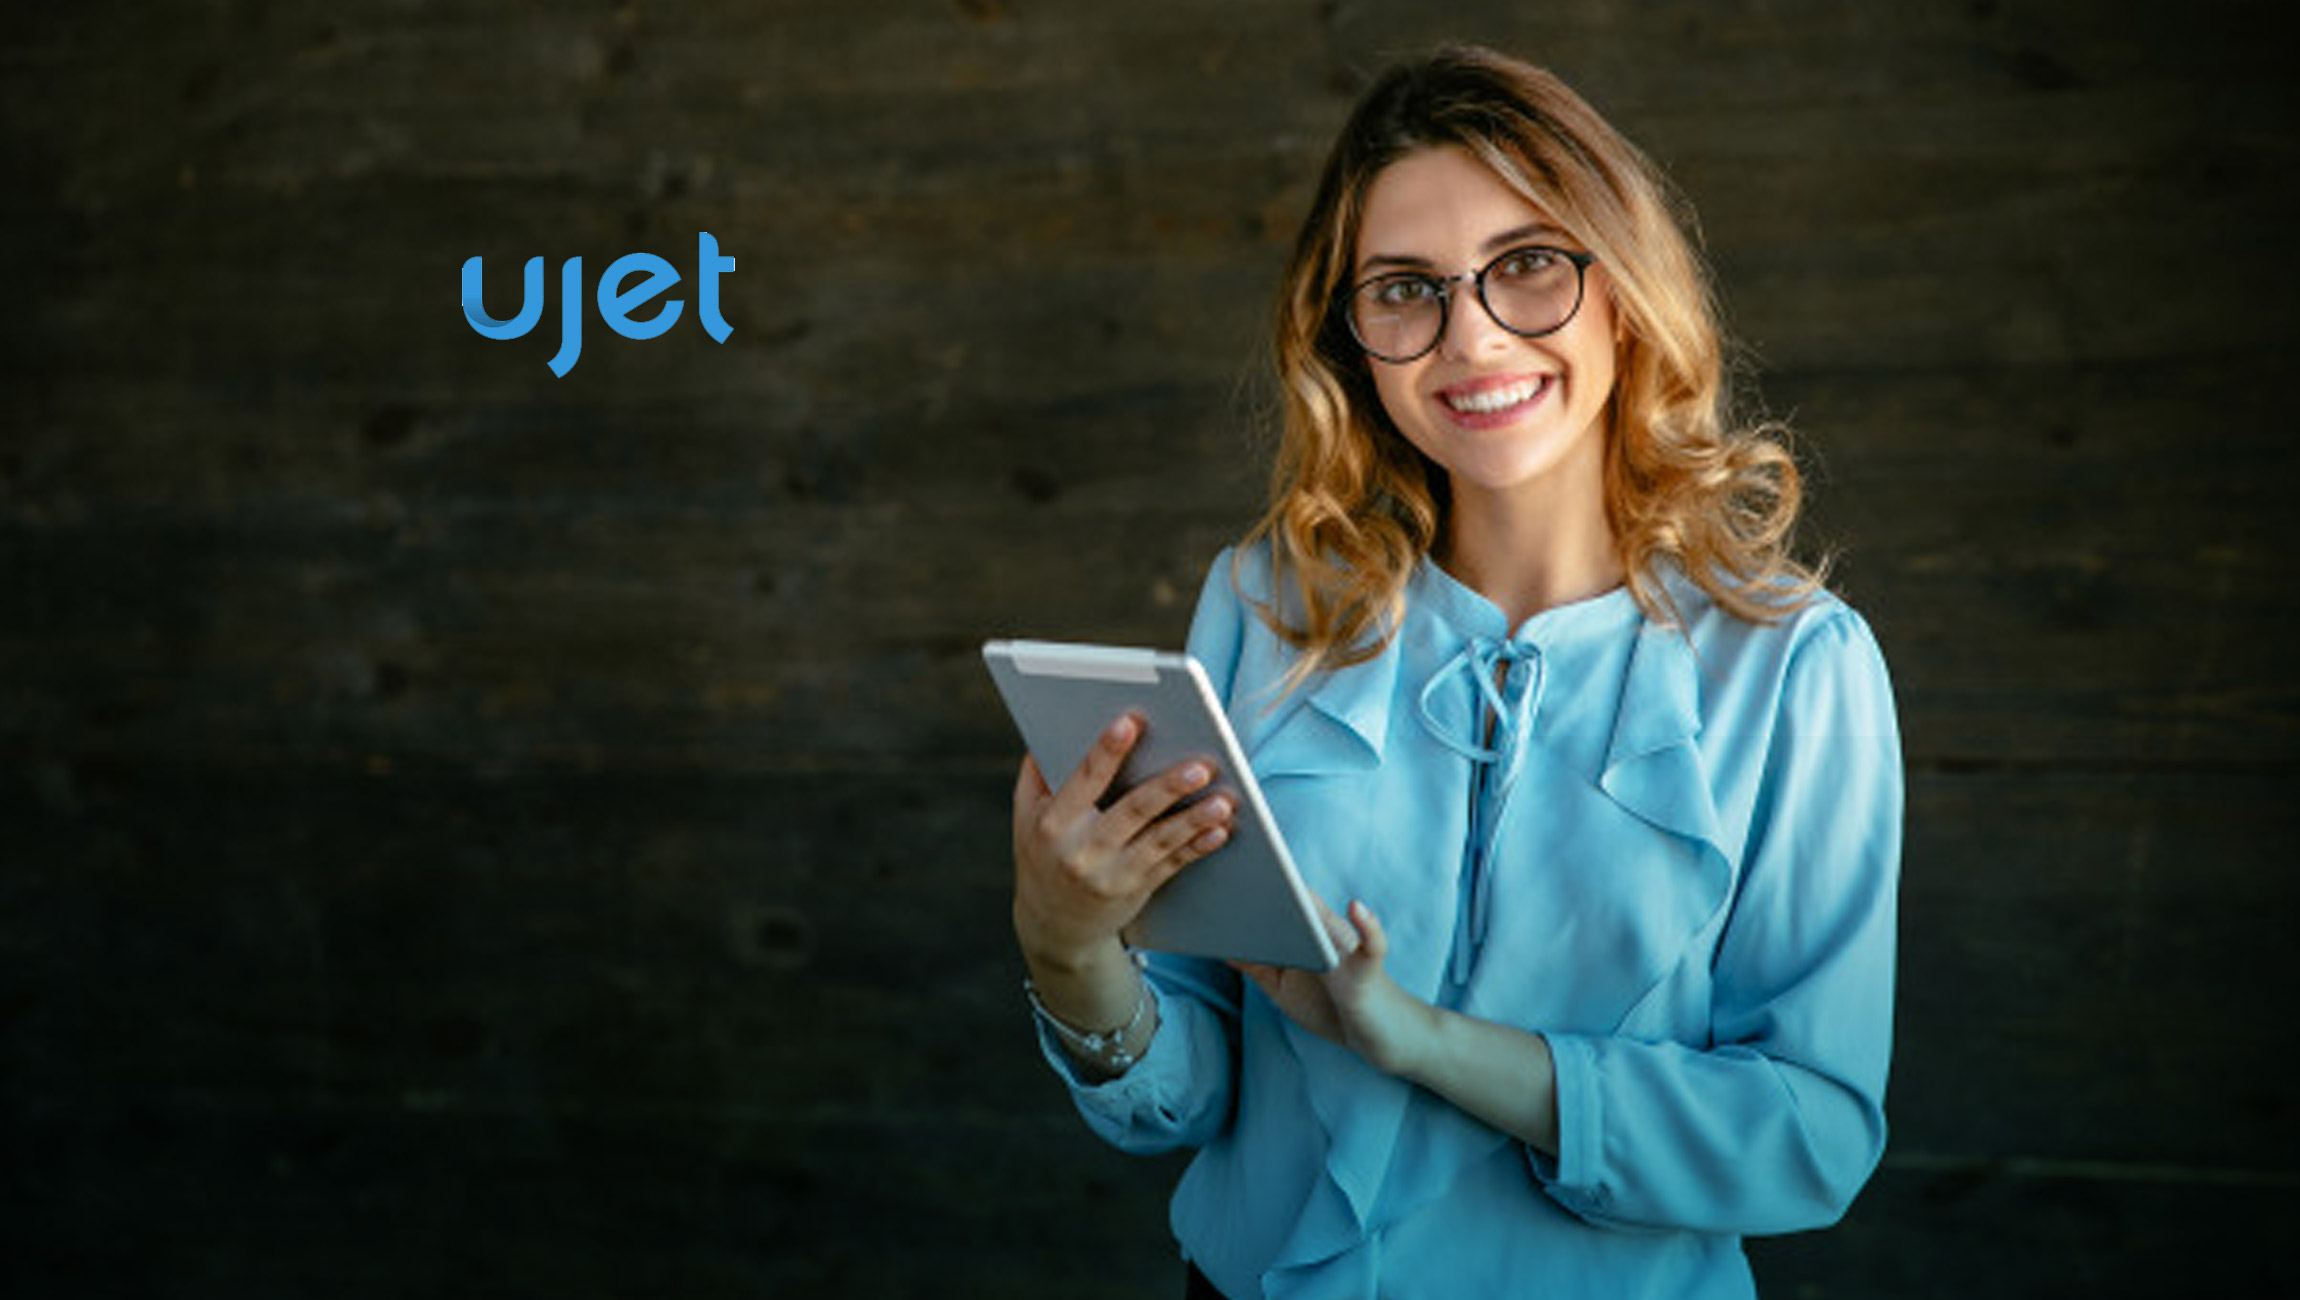 UJET Releases New Research with Insights on the New Tools, Technologies, and Channels Shaping Customer Support